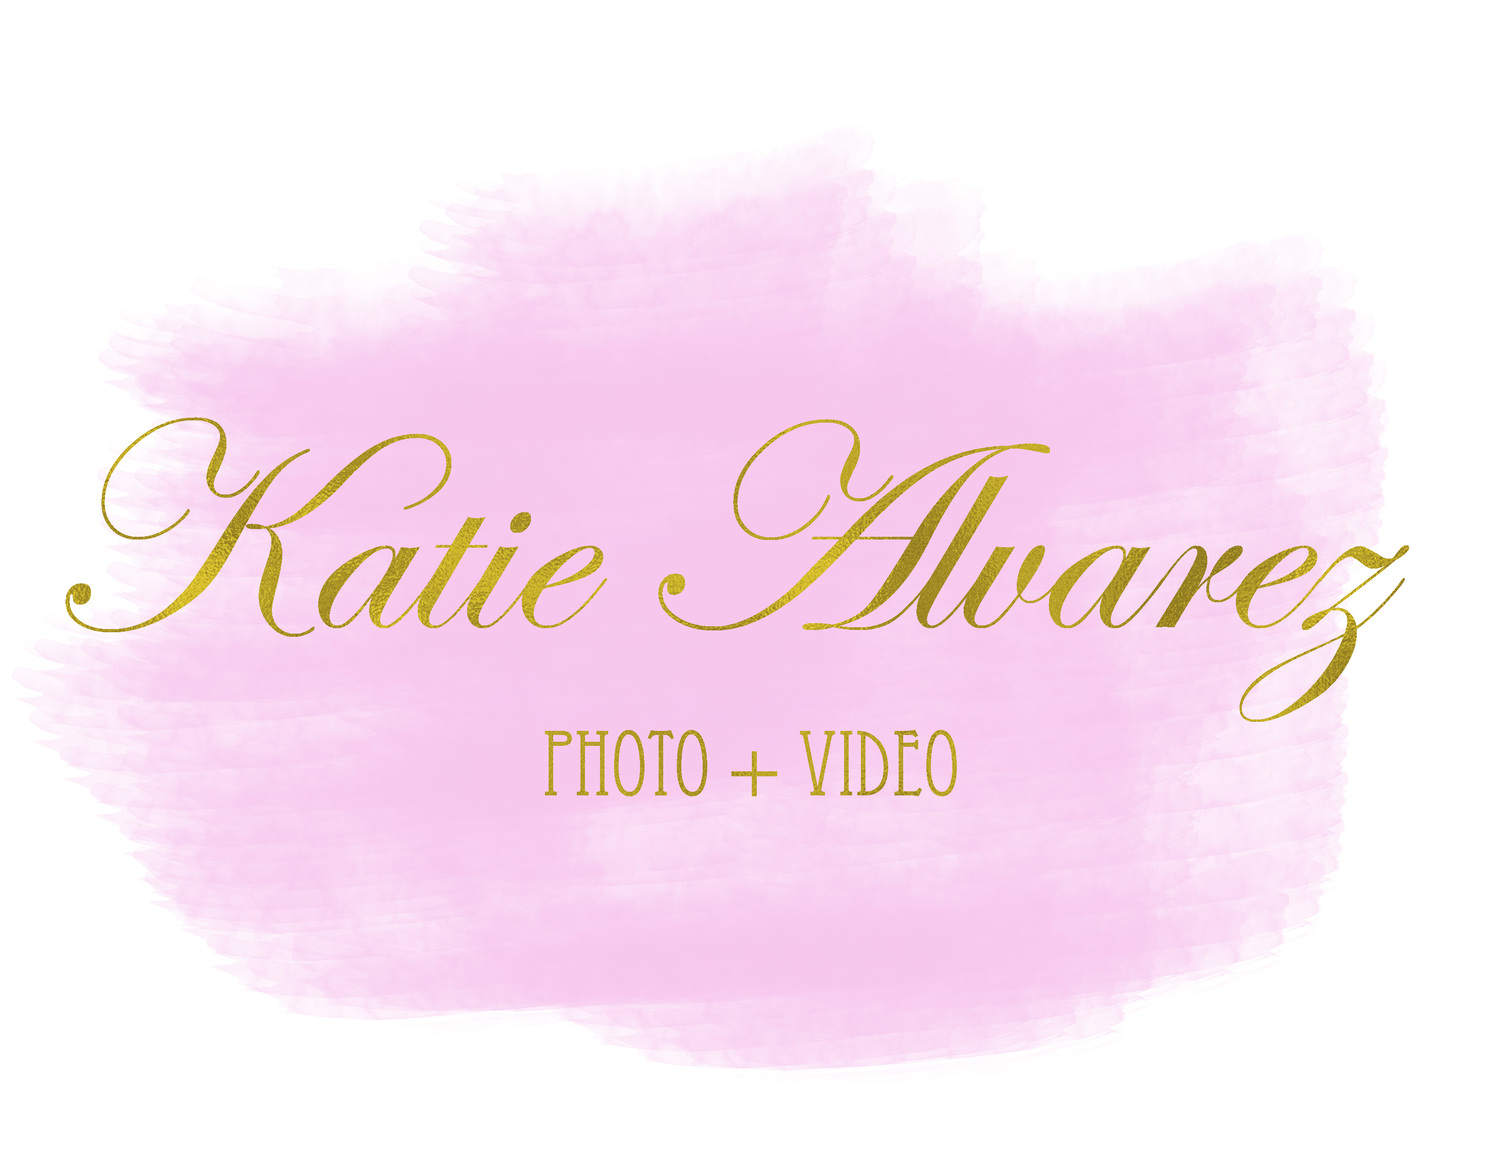 Katie Alvarez Photo+Video